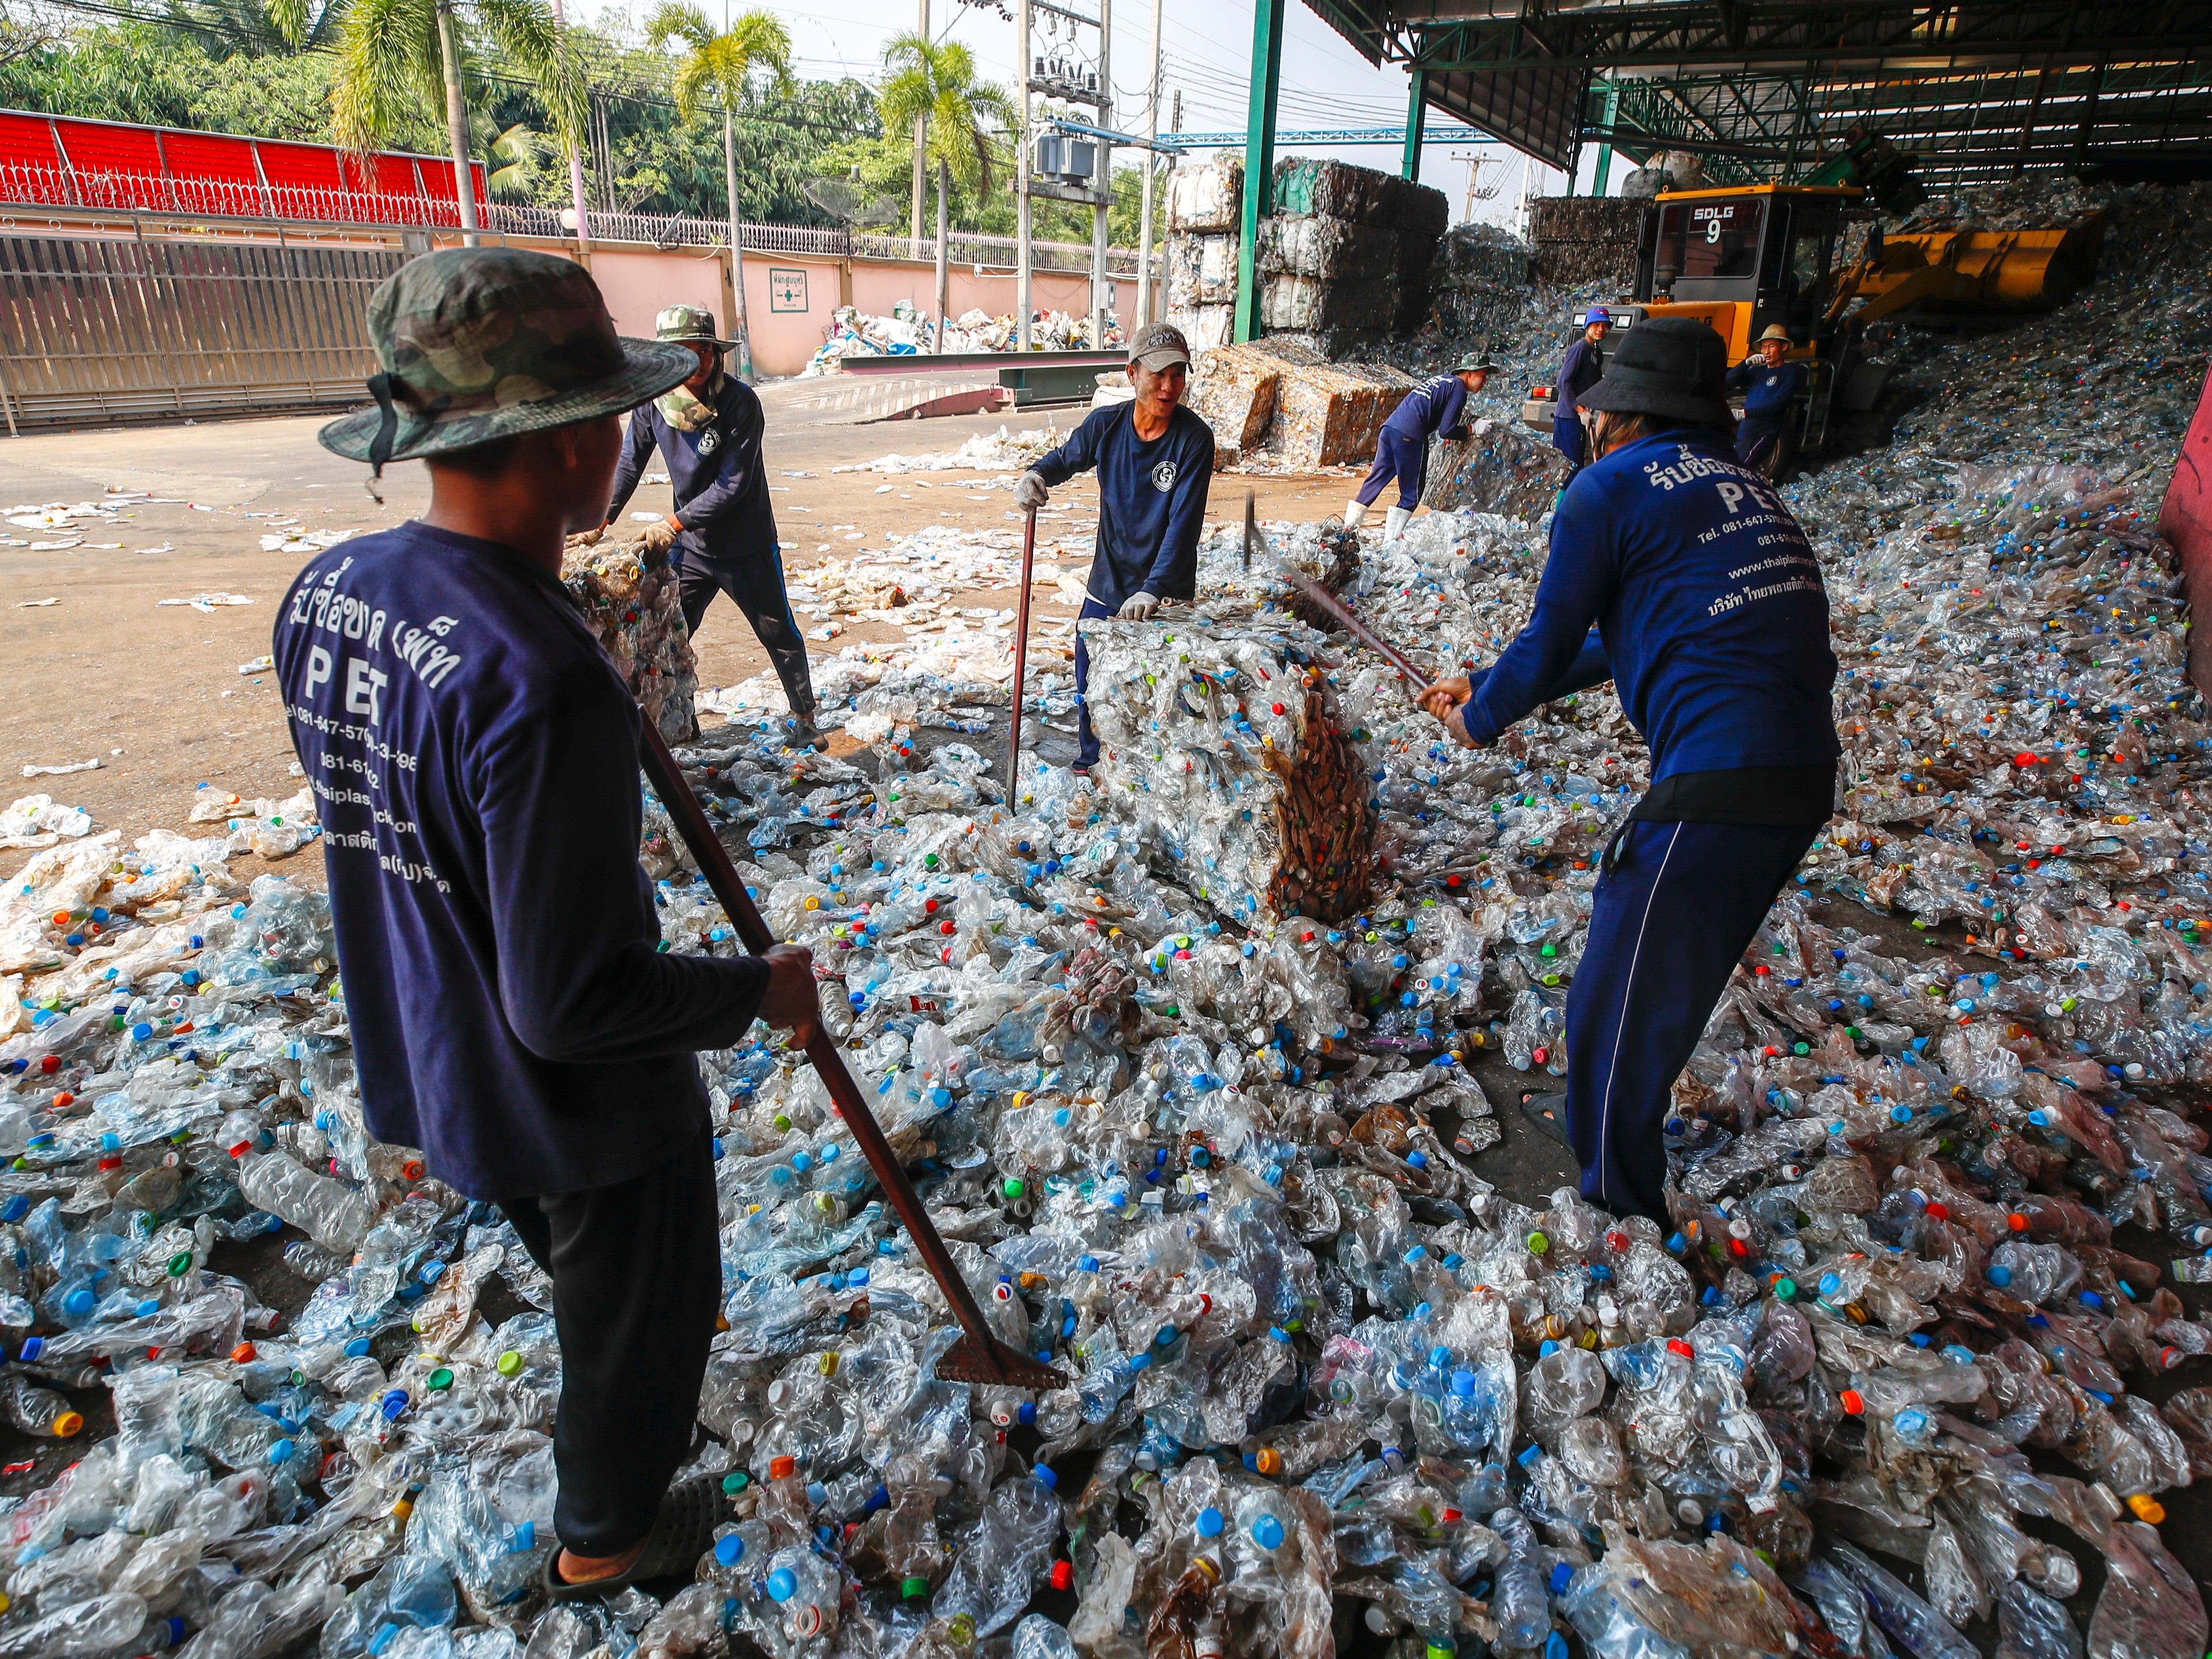 Migrant workers break apart blocks of pressed plastic bottles at a recycling plant near Bangkok, Thailand in  December 2018. According to Thailand's Ministry of Environment, Thailand produces about 2 million tons of plastic garbage every year and of that only half a million ton is reused or recycled. Research shows that the Asian countries of China, Indonesia, the Philippines, Vietnam and Thailand dump more roughly 60 percent of the world's plastic into oceans worldwide, more than the rest of the world combined.